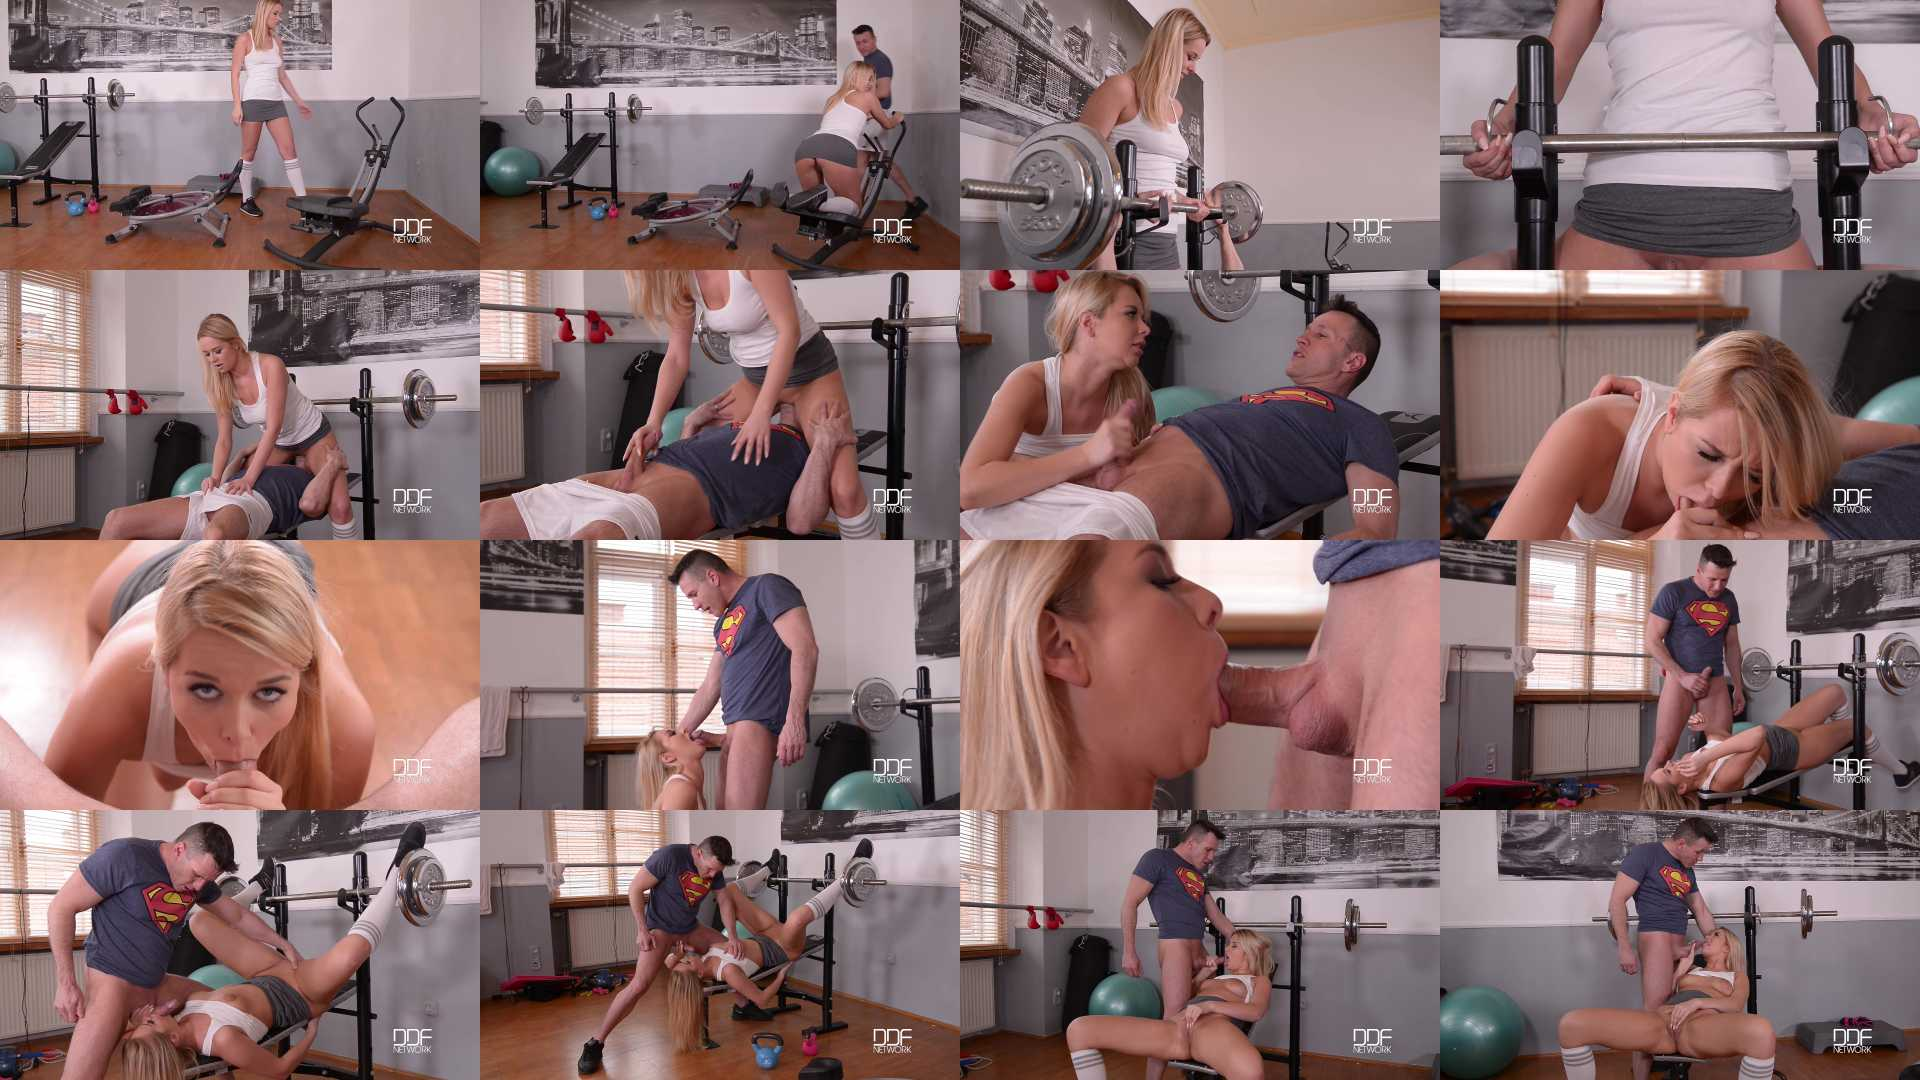 Nikky Dream in Bench Press 69 - A Blowjob Workout With Some Ball Licking